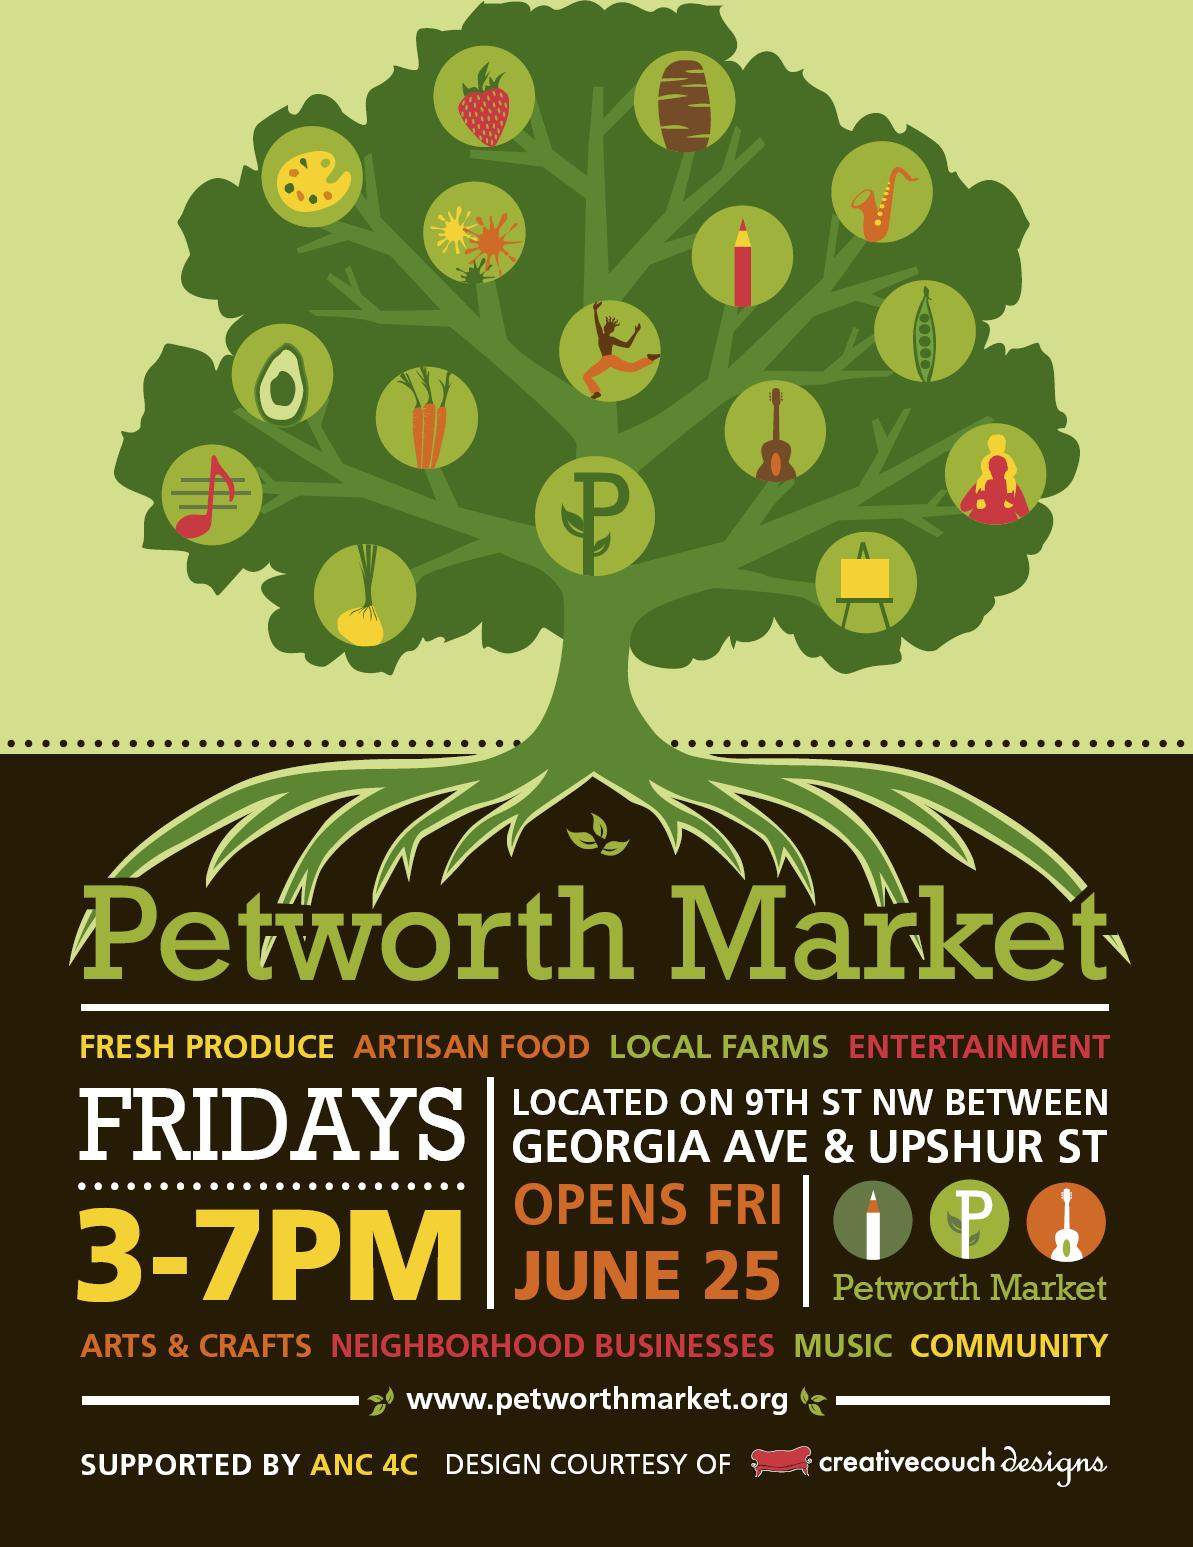 petworth community market set to open friday  june 25